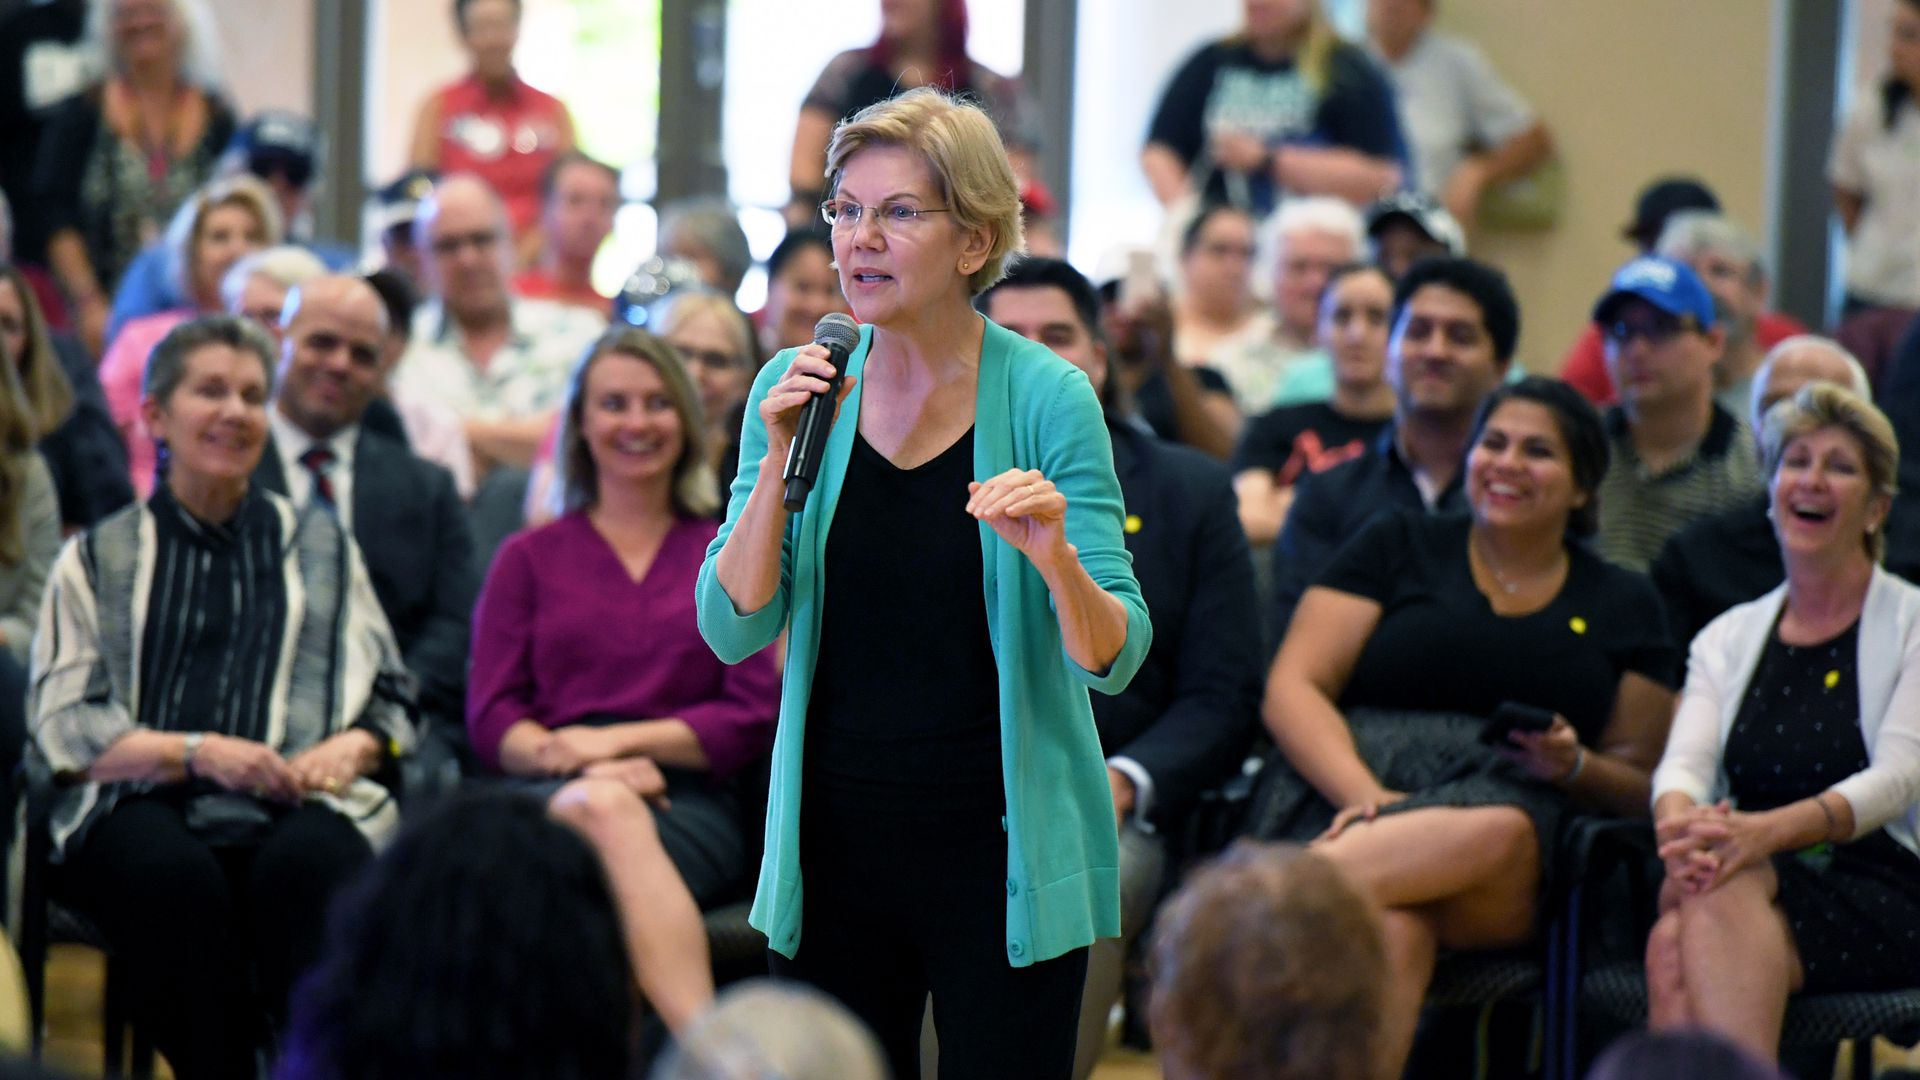 Sen. Elizabeth Warren talking to a group of people in Las Vegas, Nev.